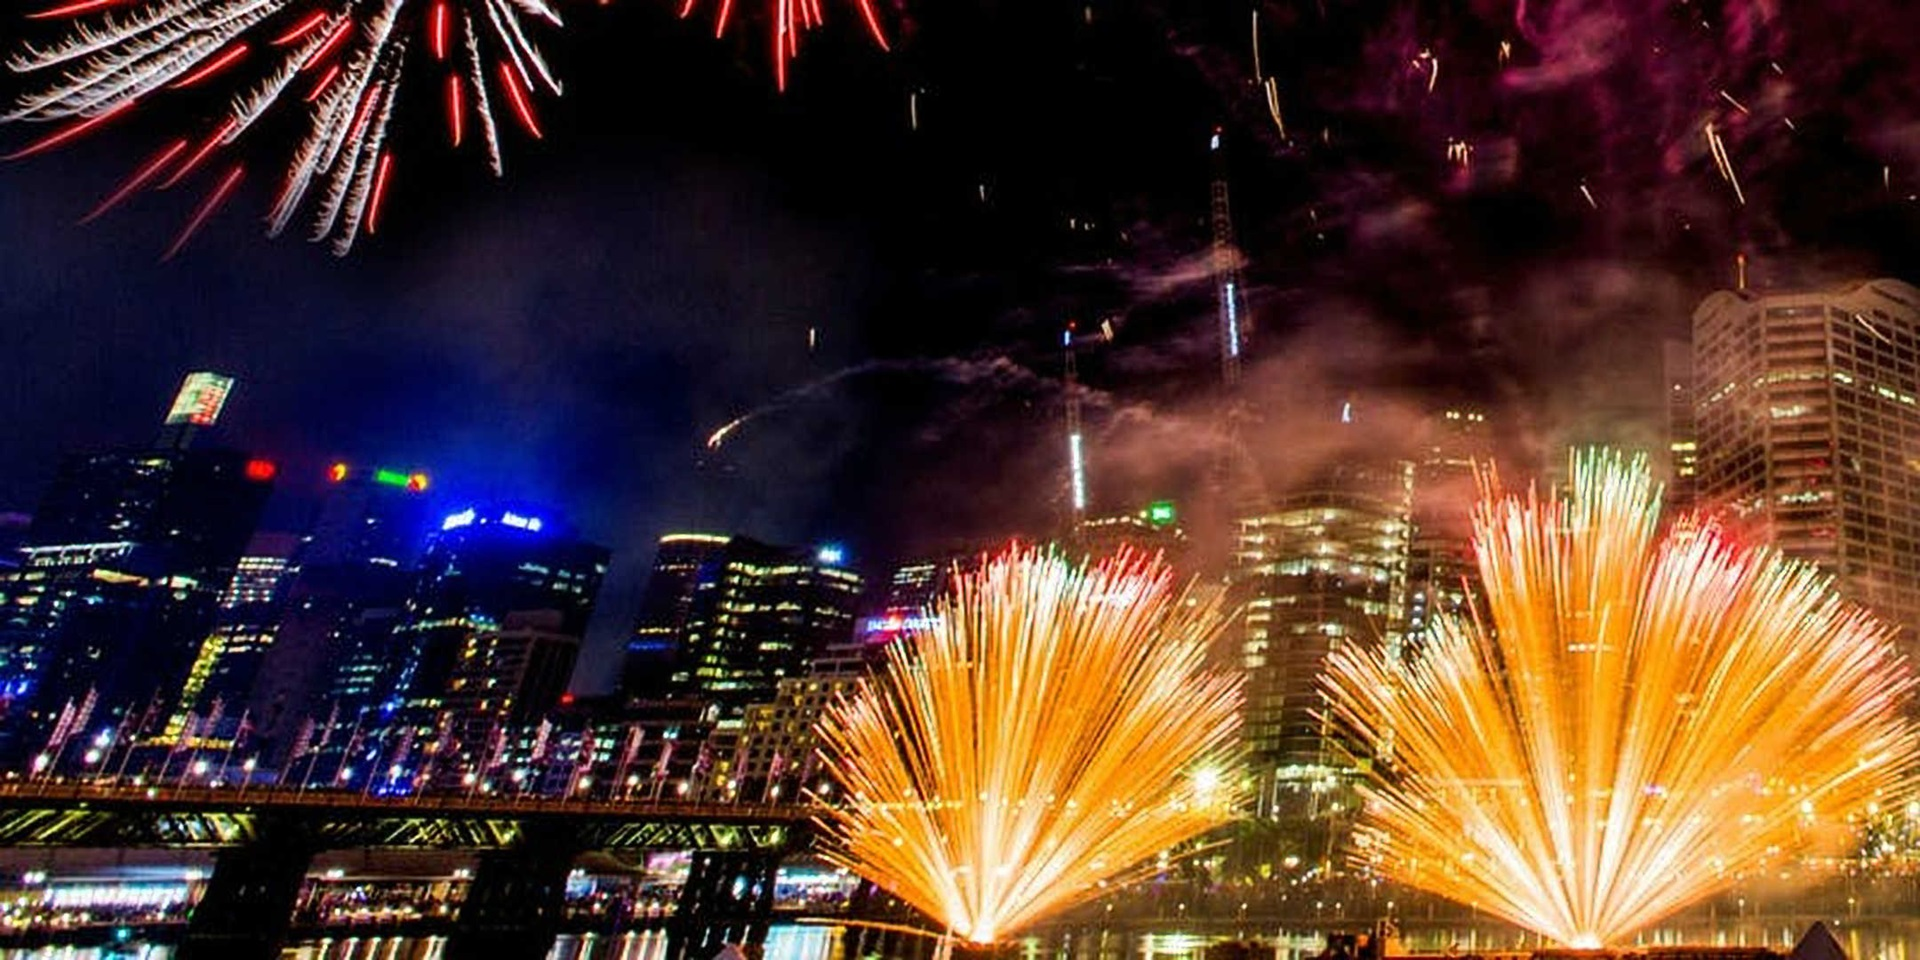 Fireworks - New Year's Eve festival, Darling Harbour